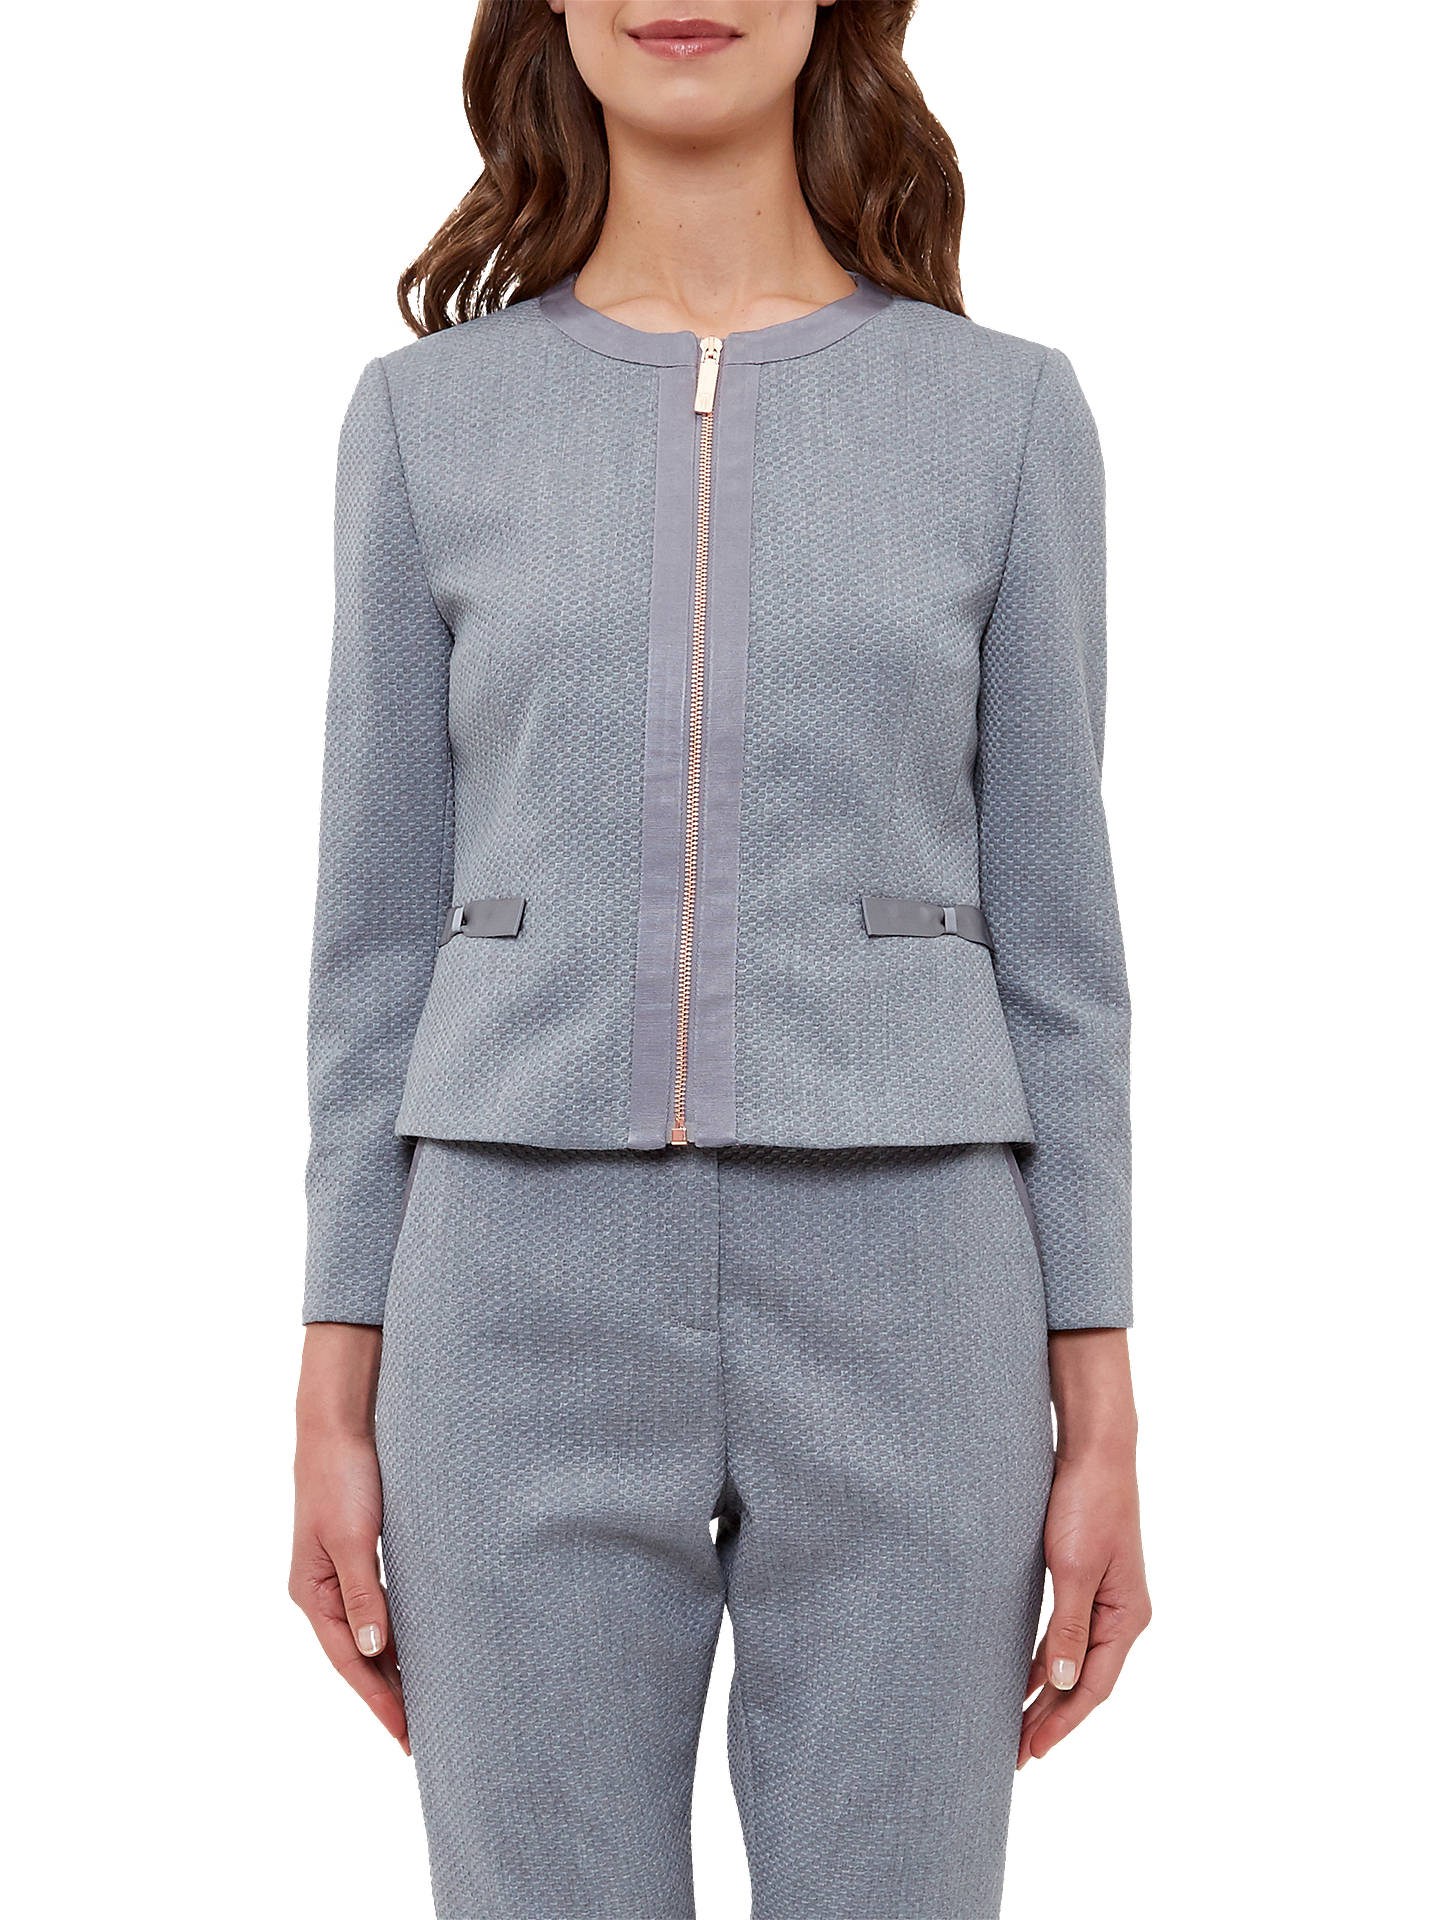 1c5c4c51b930d7 Ted Baker Nadae Cropped Bow Detail Jacket at John Lewis   Partners